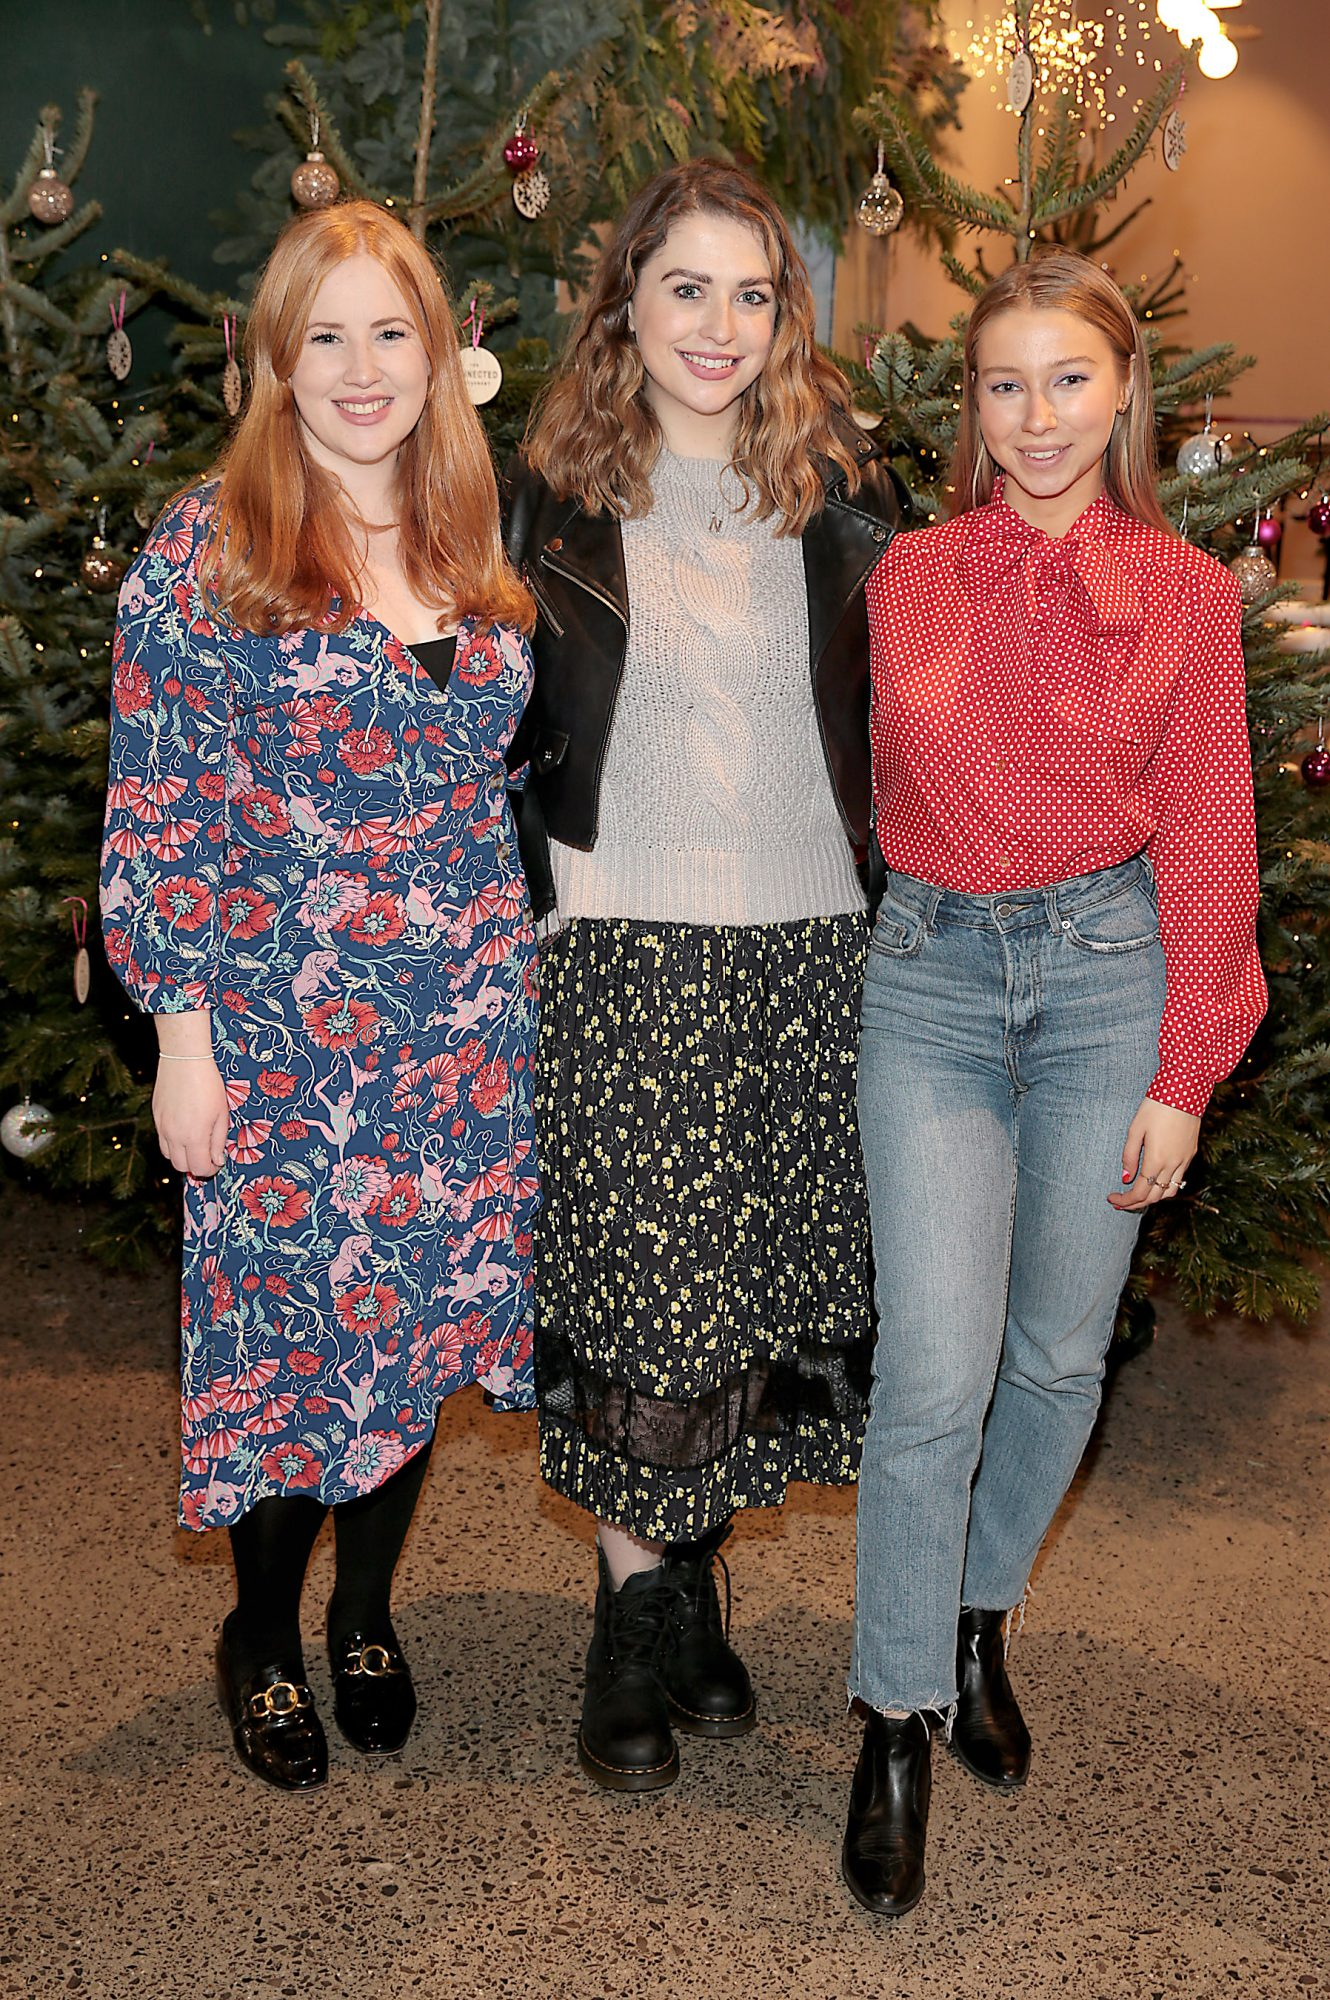 Megan Roantree ,Niamh Devereux and Adele Miner at the opening of The Connected Restaurant, powered by Three  in Sir John Rogerson Quay Dublin Pic Brian McEvoy